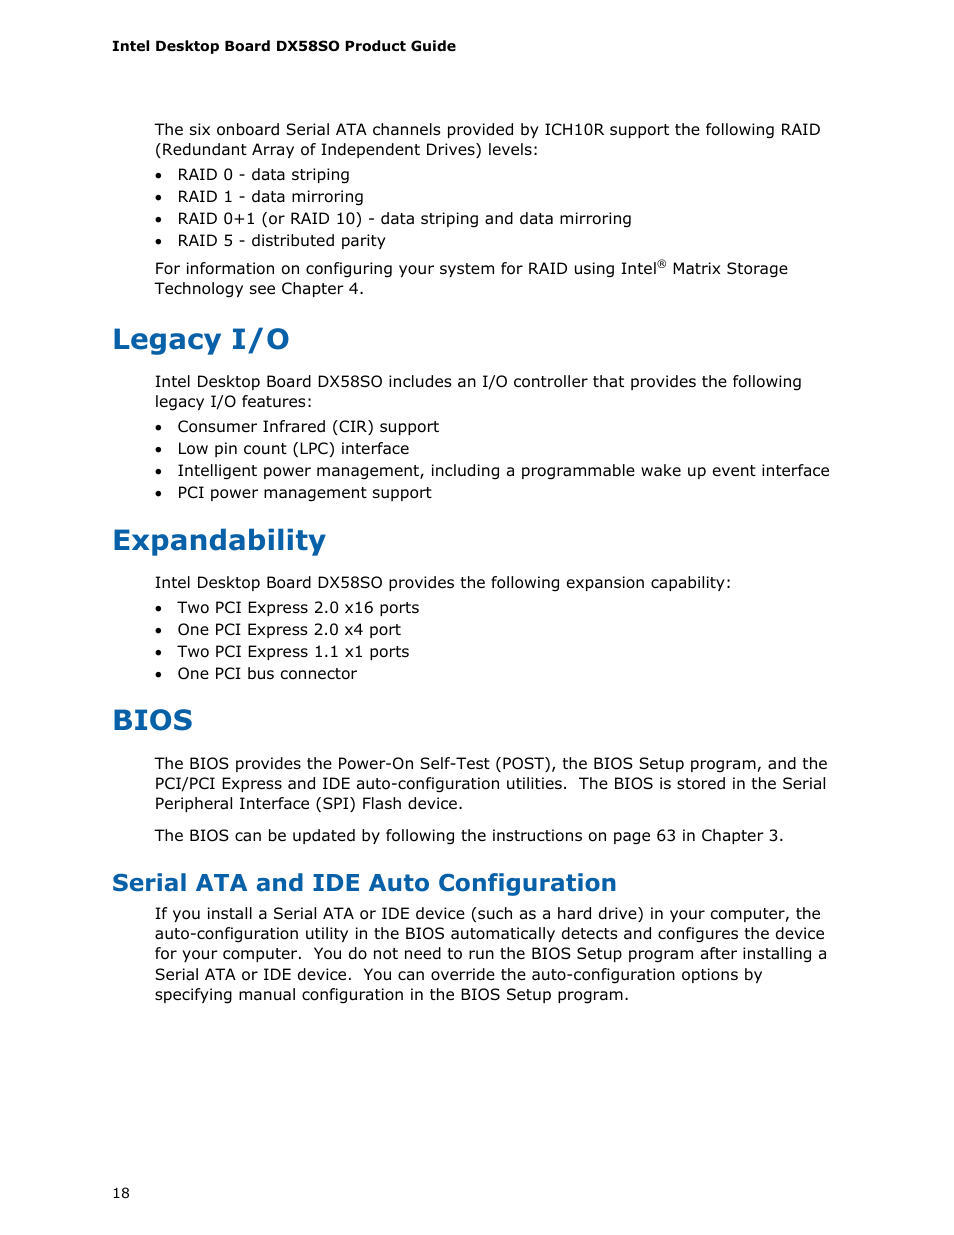 Legacy i/o, Expandability, Bios | Intel DX58SO User Manual